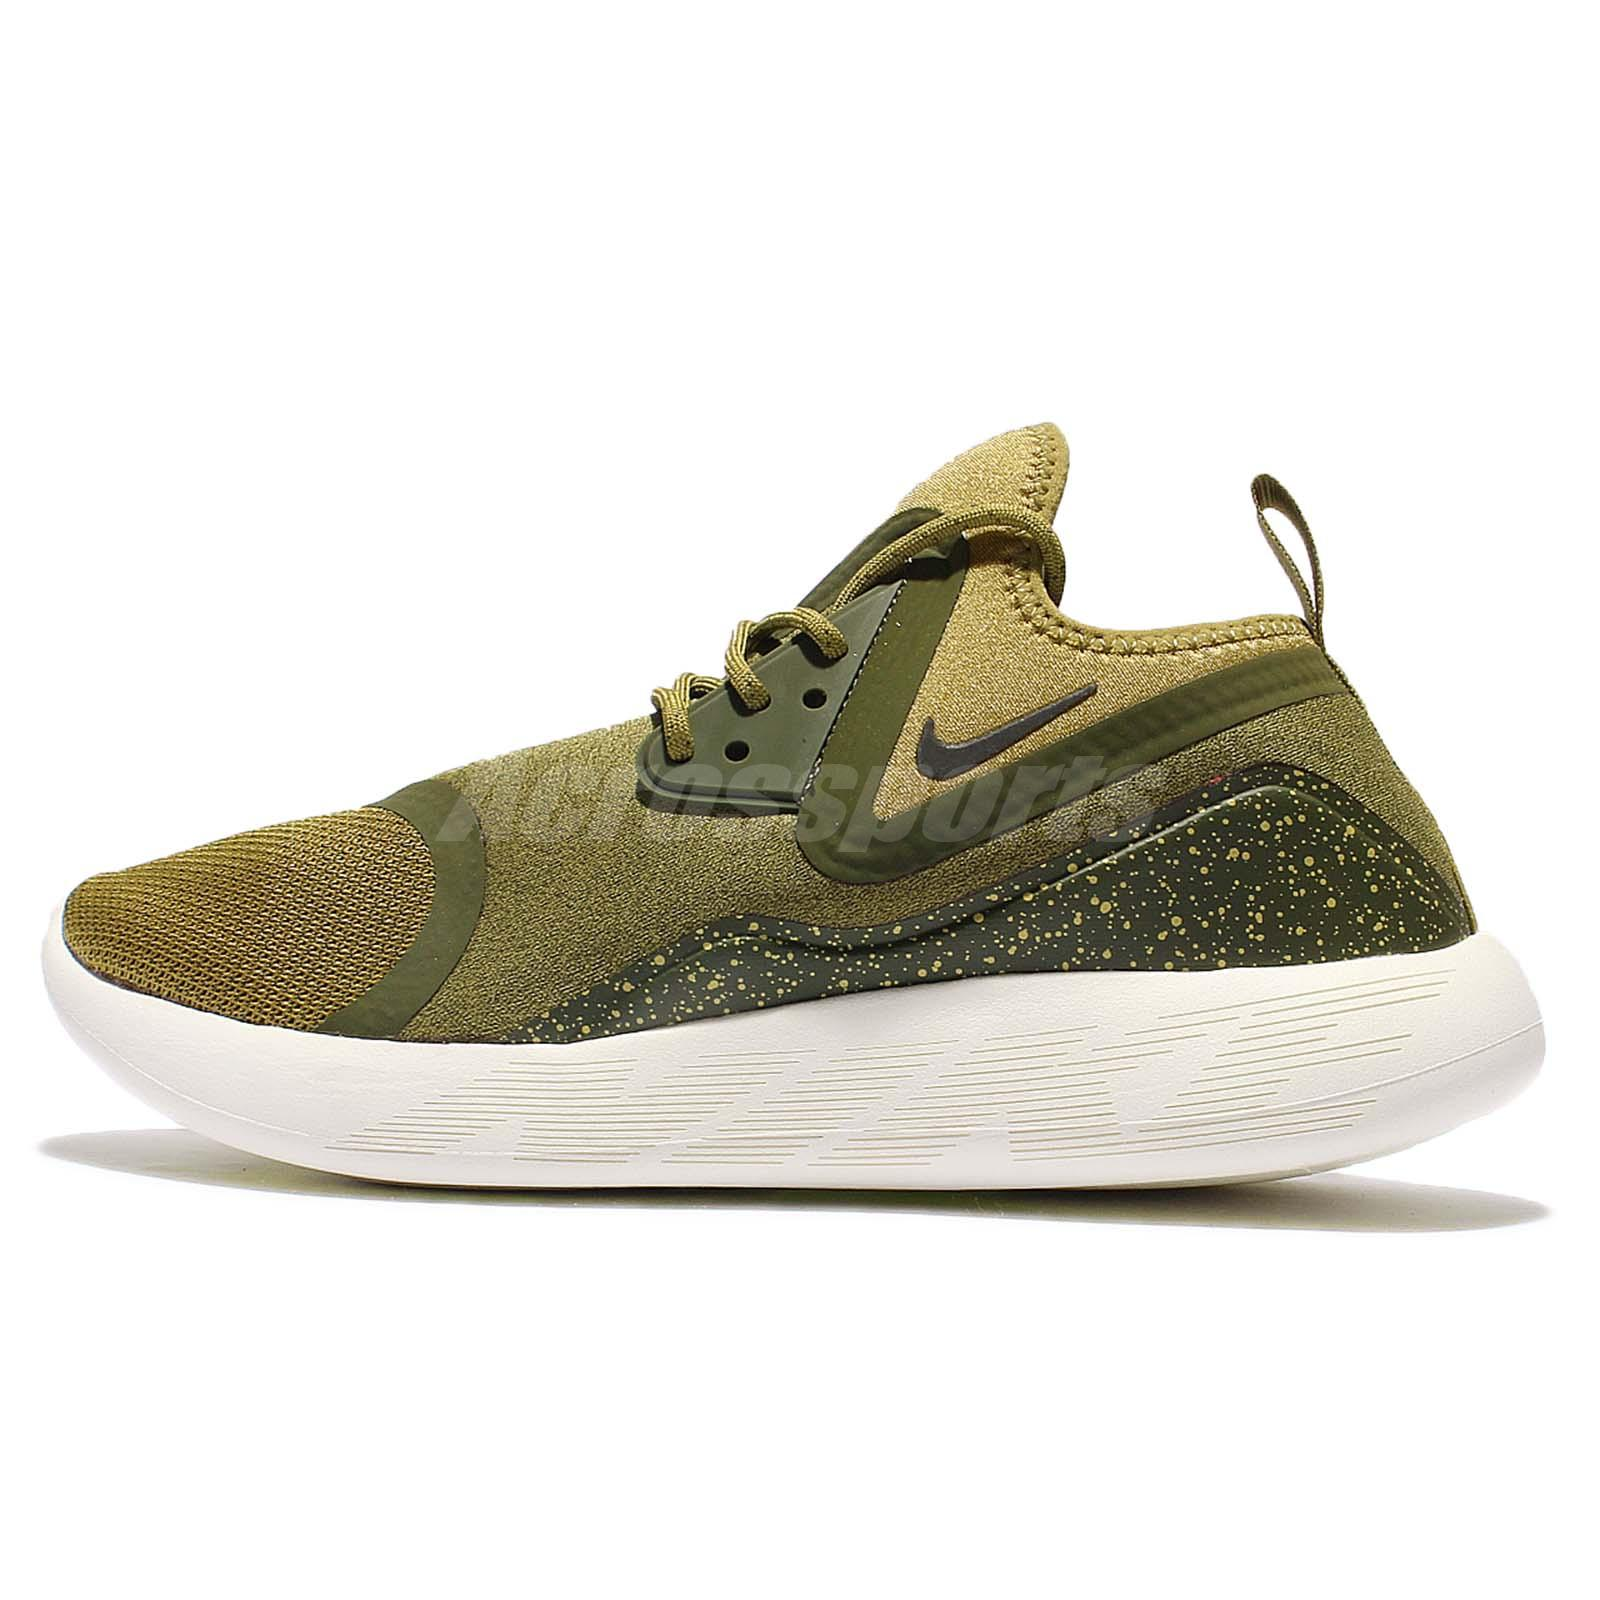 Nike Lunarcharge Essential Camper Green Men Running Shoes Sneakers 923619 -300 725607d8e